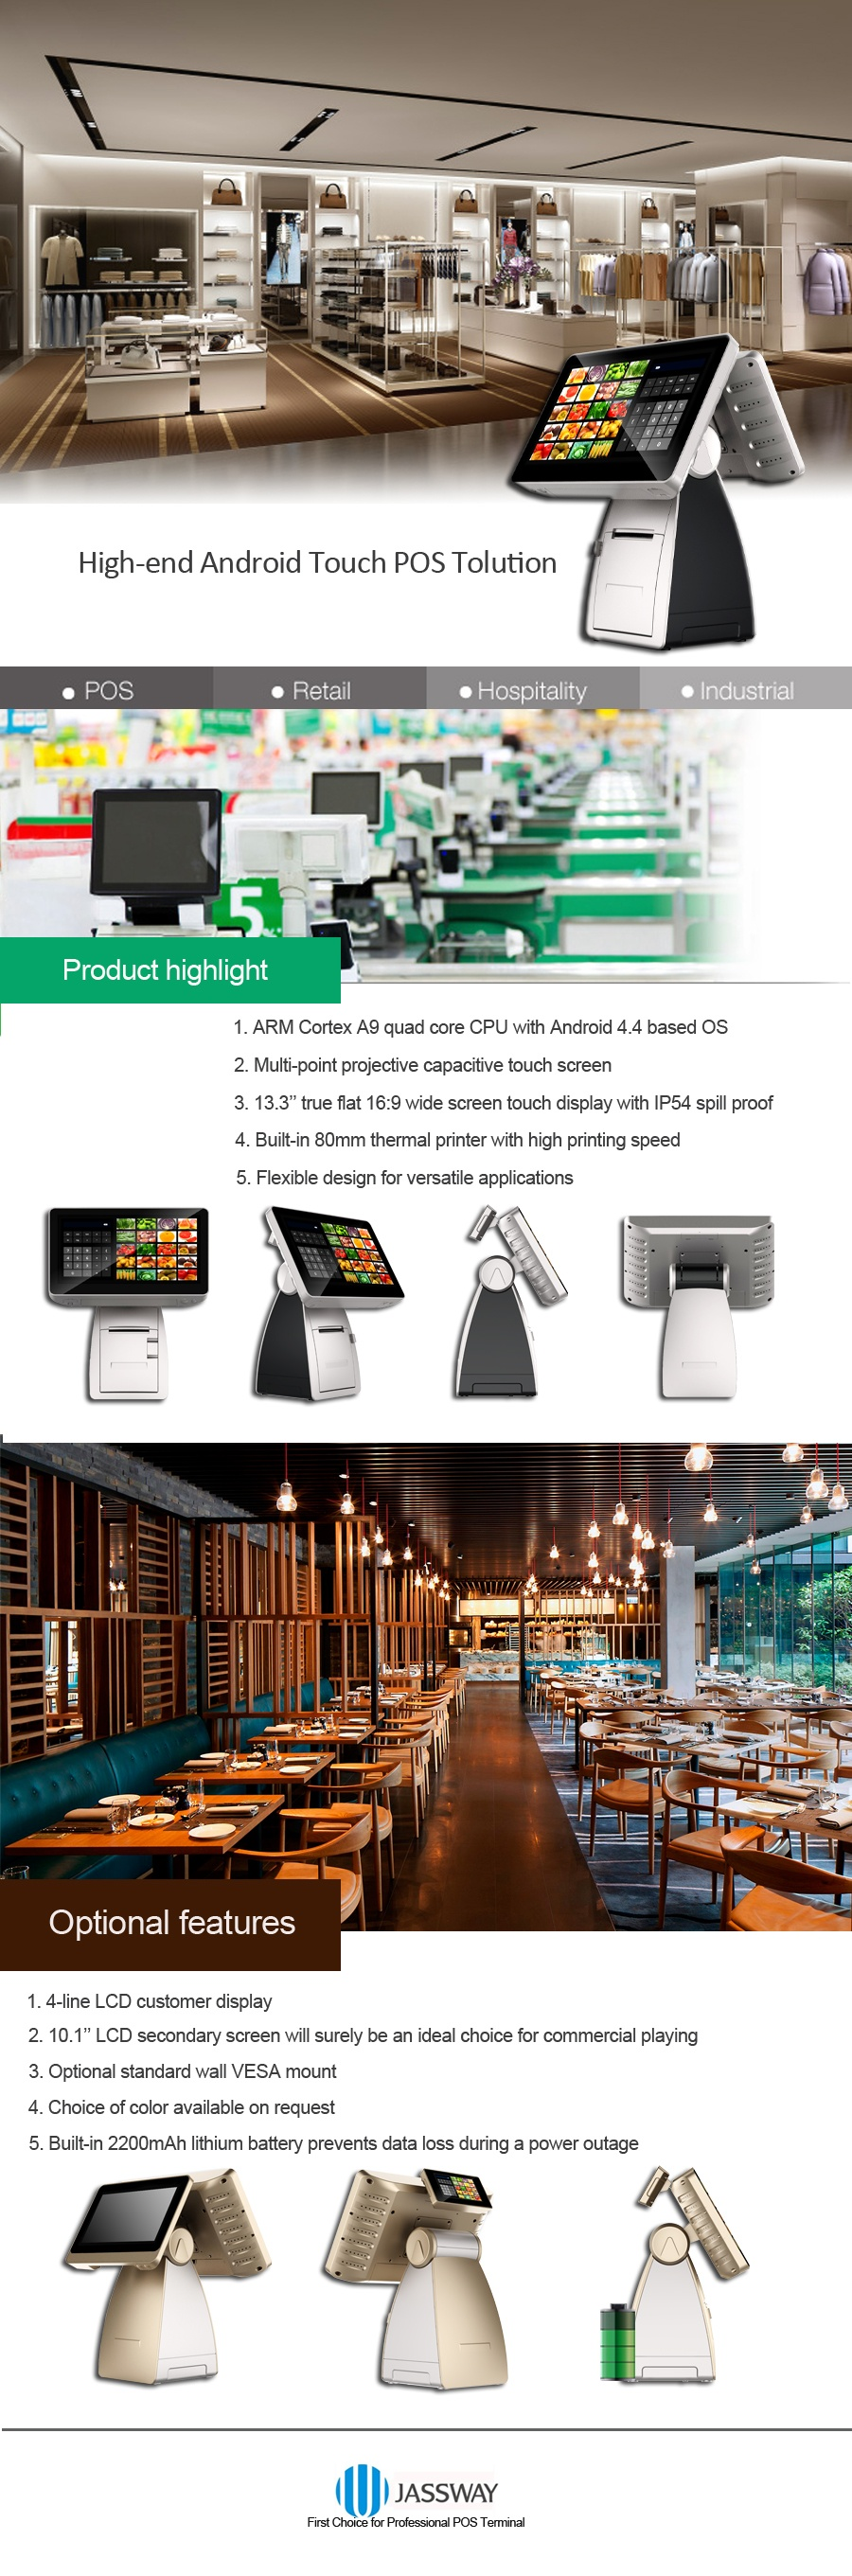 High-end android touch pos solution